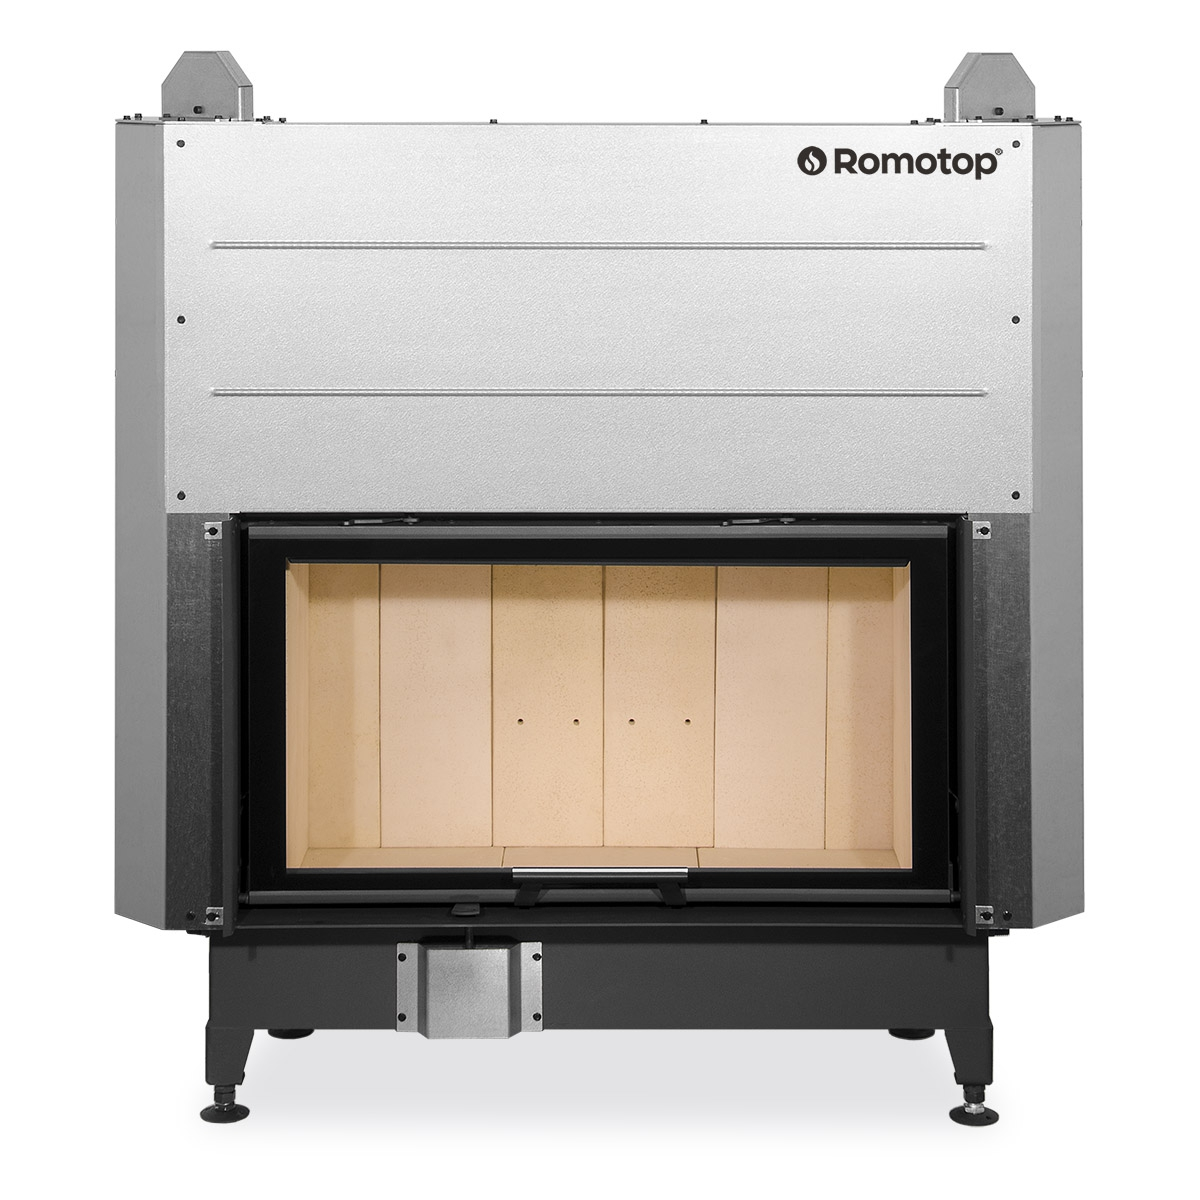 HEAT 3g L 88.50.01 - hot-air fireplace insert with lifting door